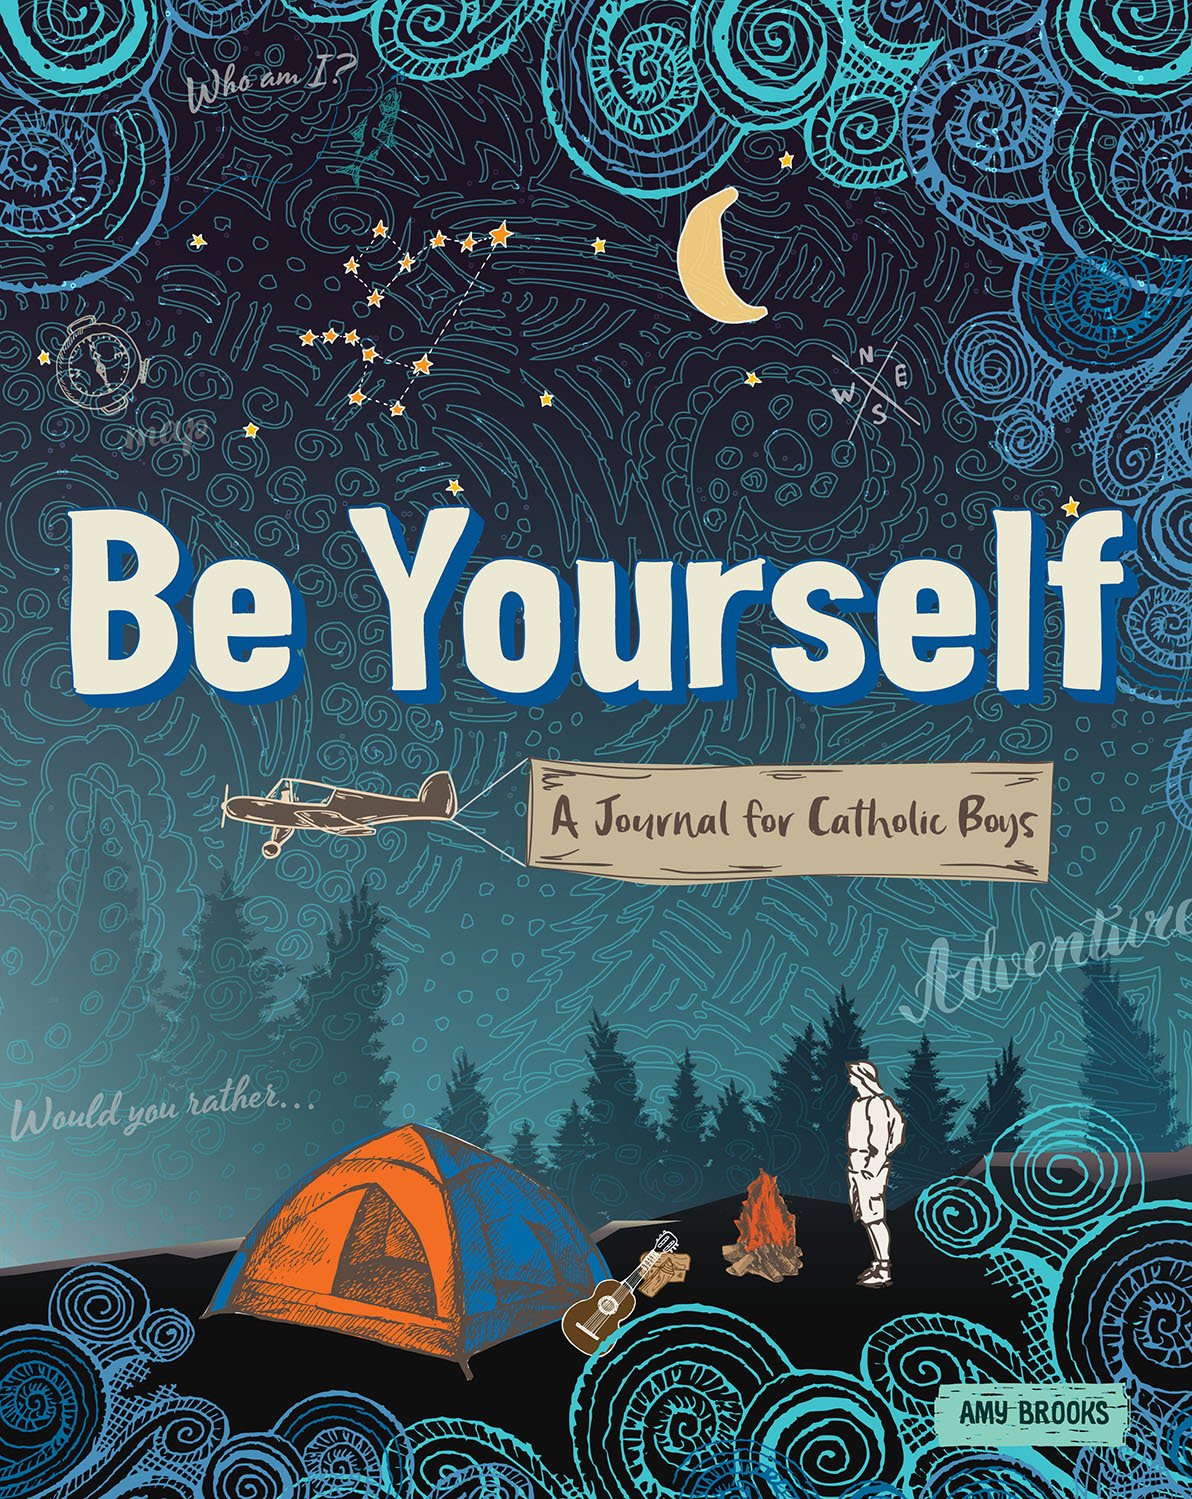 Be Yourself OSV boys journal